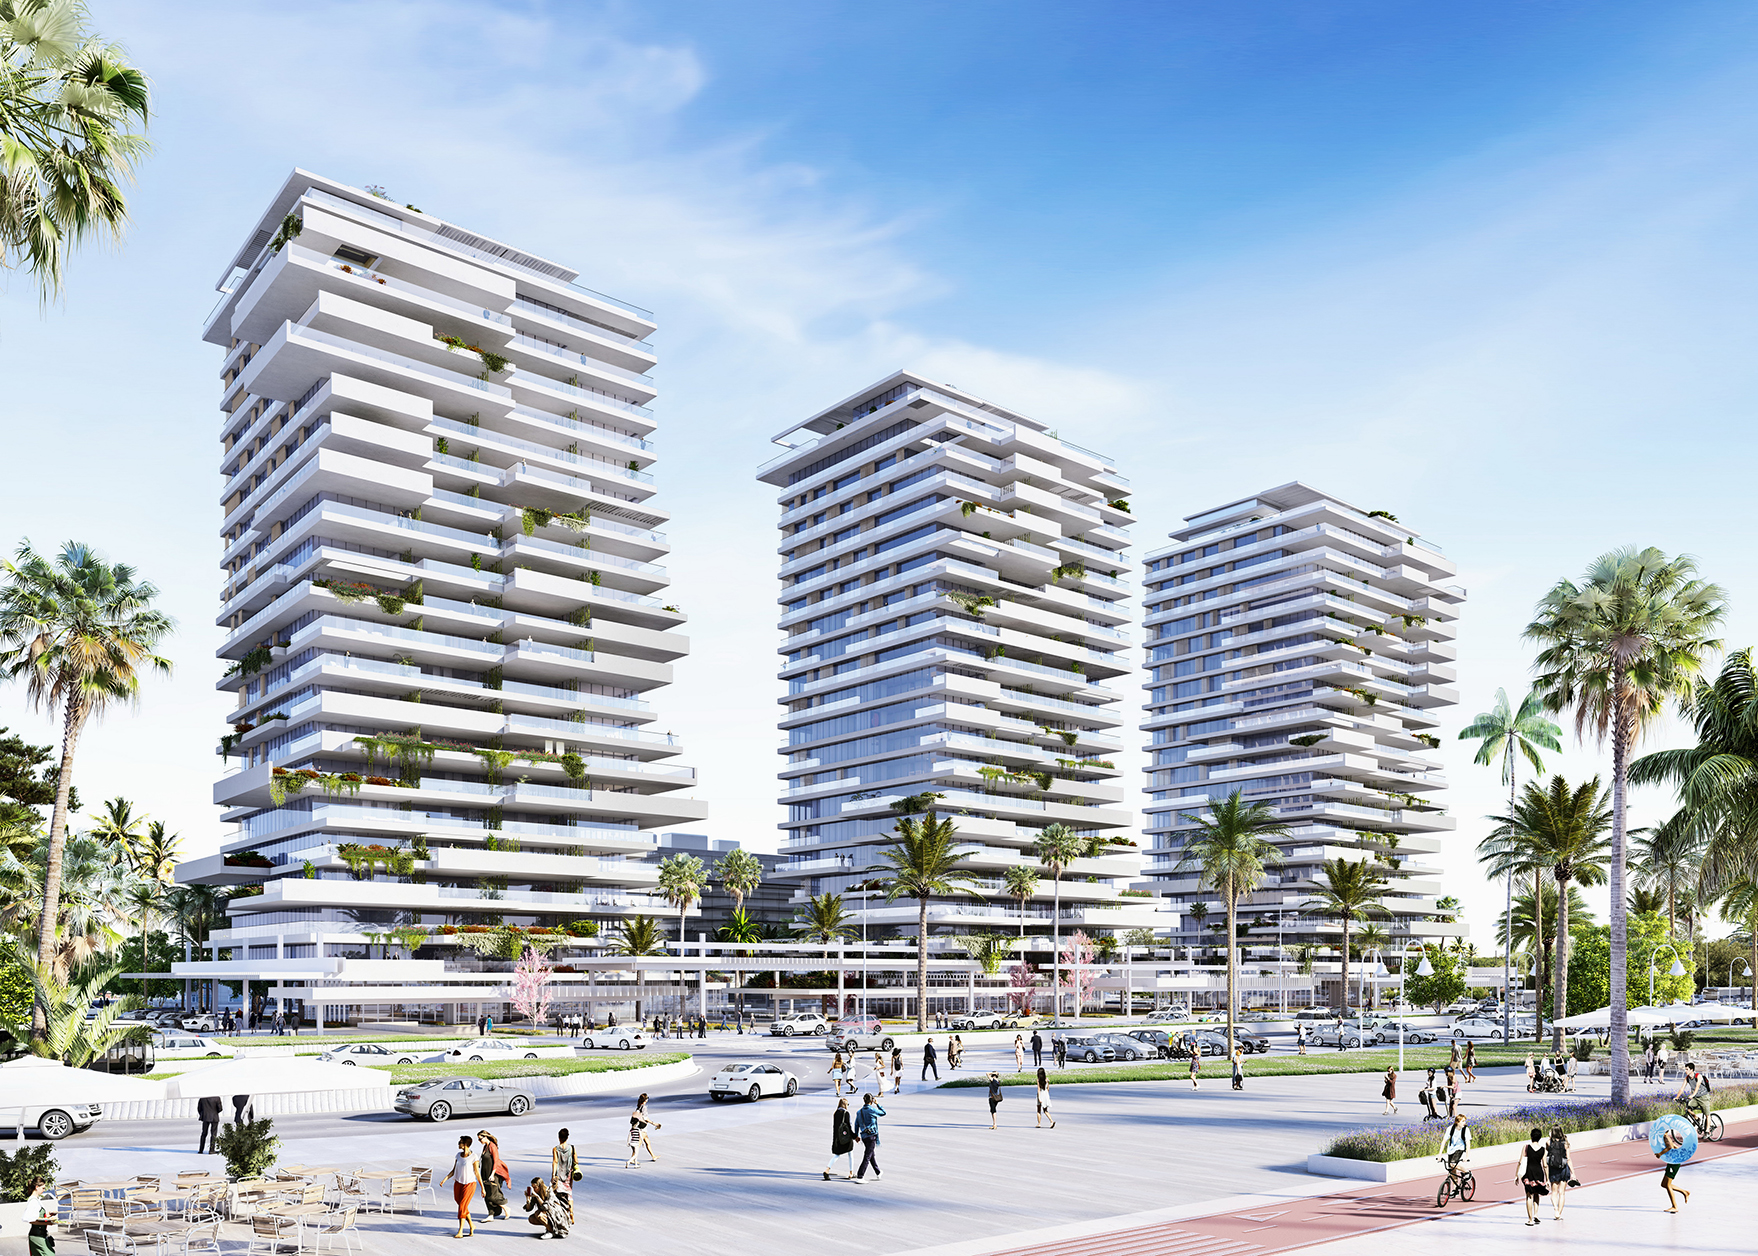 Estudio Lamela has been declared the winners by Metrovacesa to design one of the iconic apartment buildings of Málaga